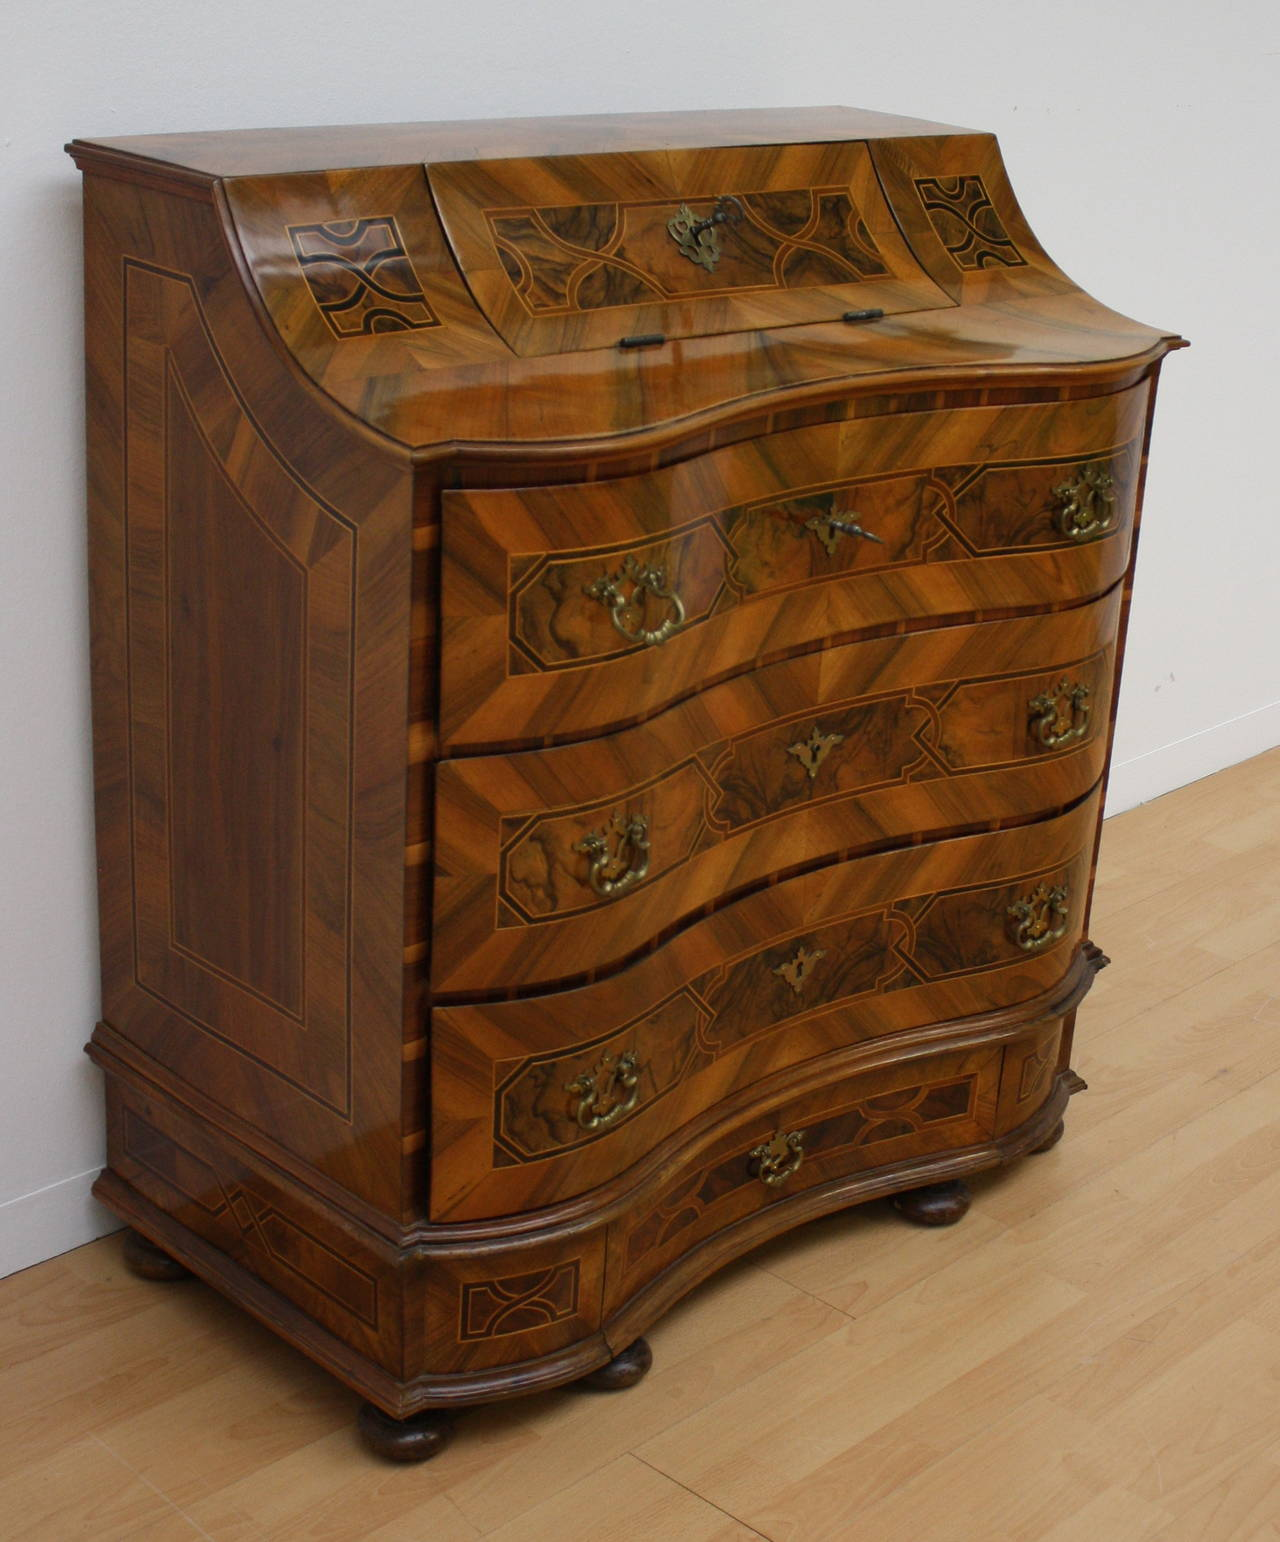 18th century baroque commode and secretaire at 1stdibs. Black Bedroom Furniture Sets. Home Design Ideas